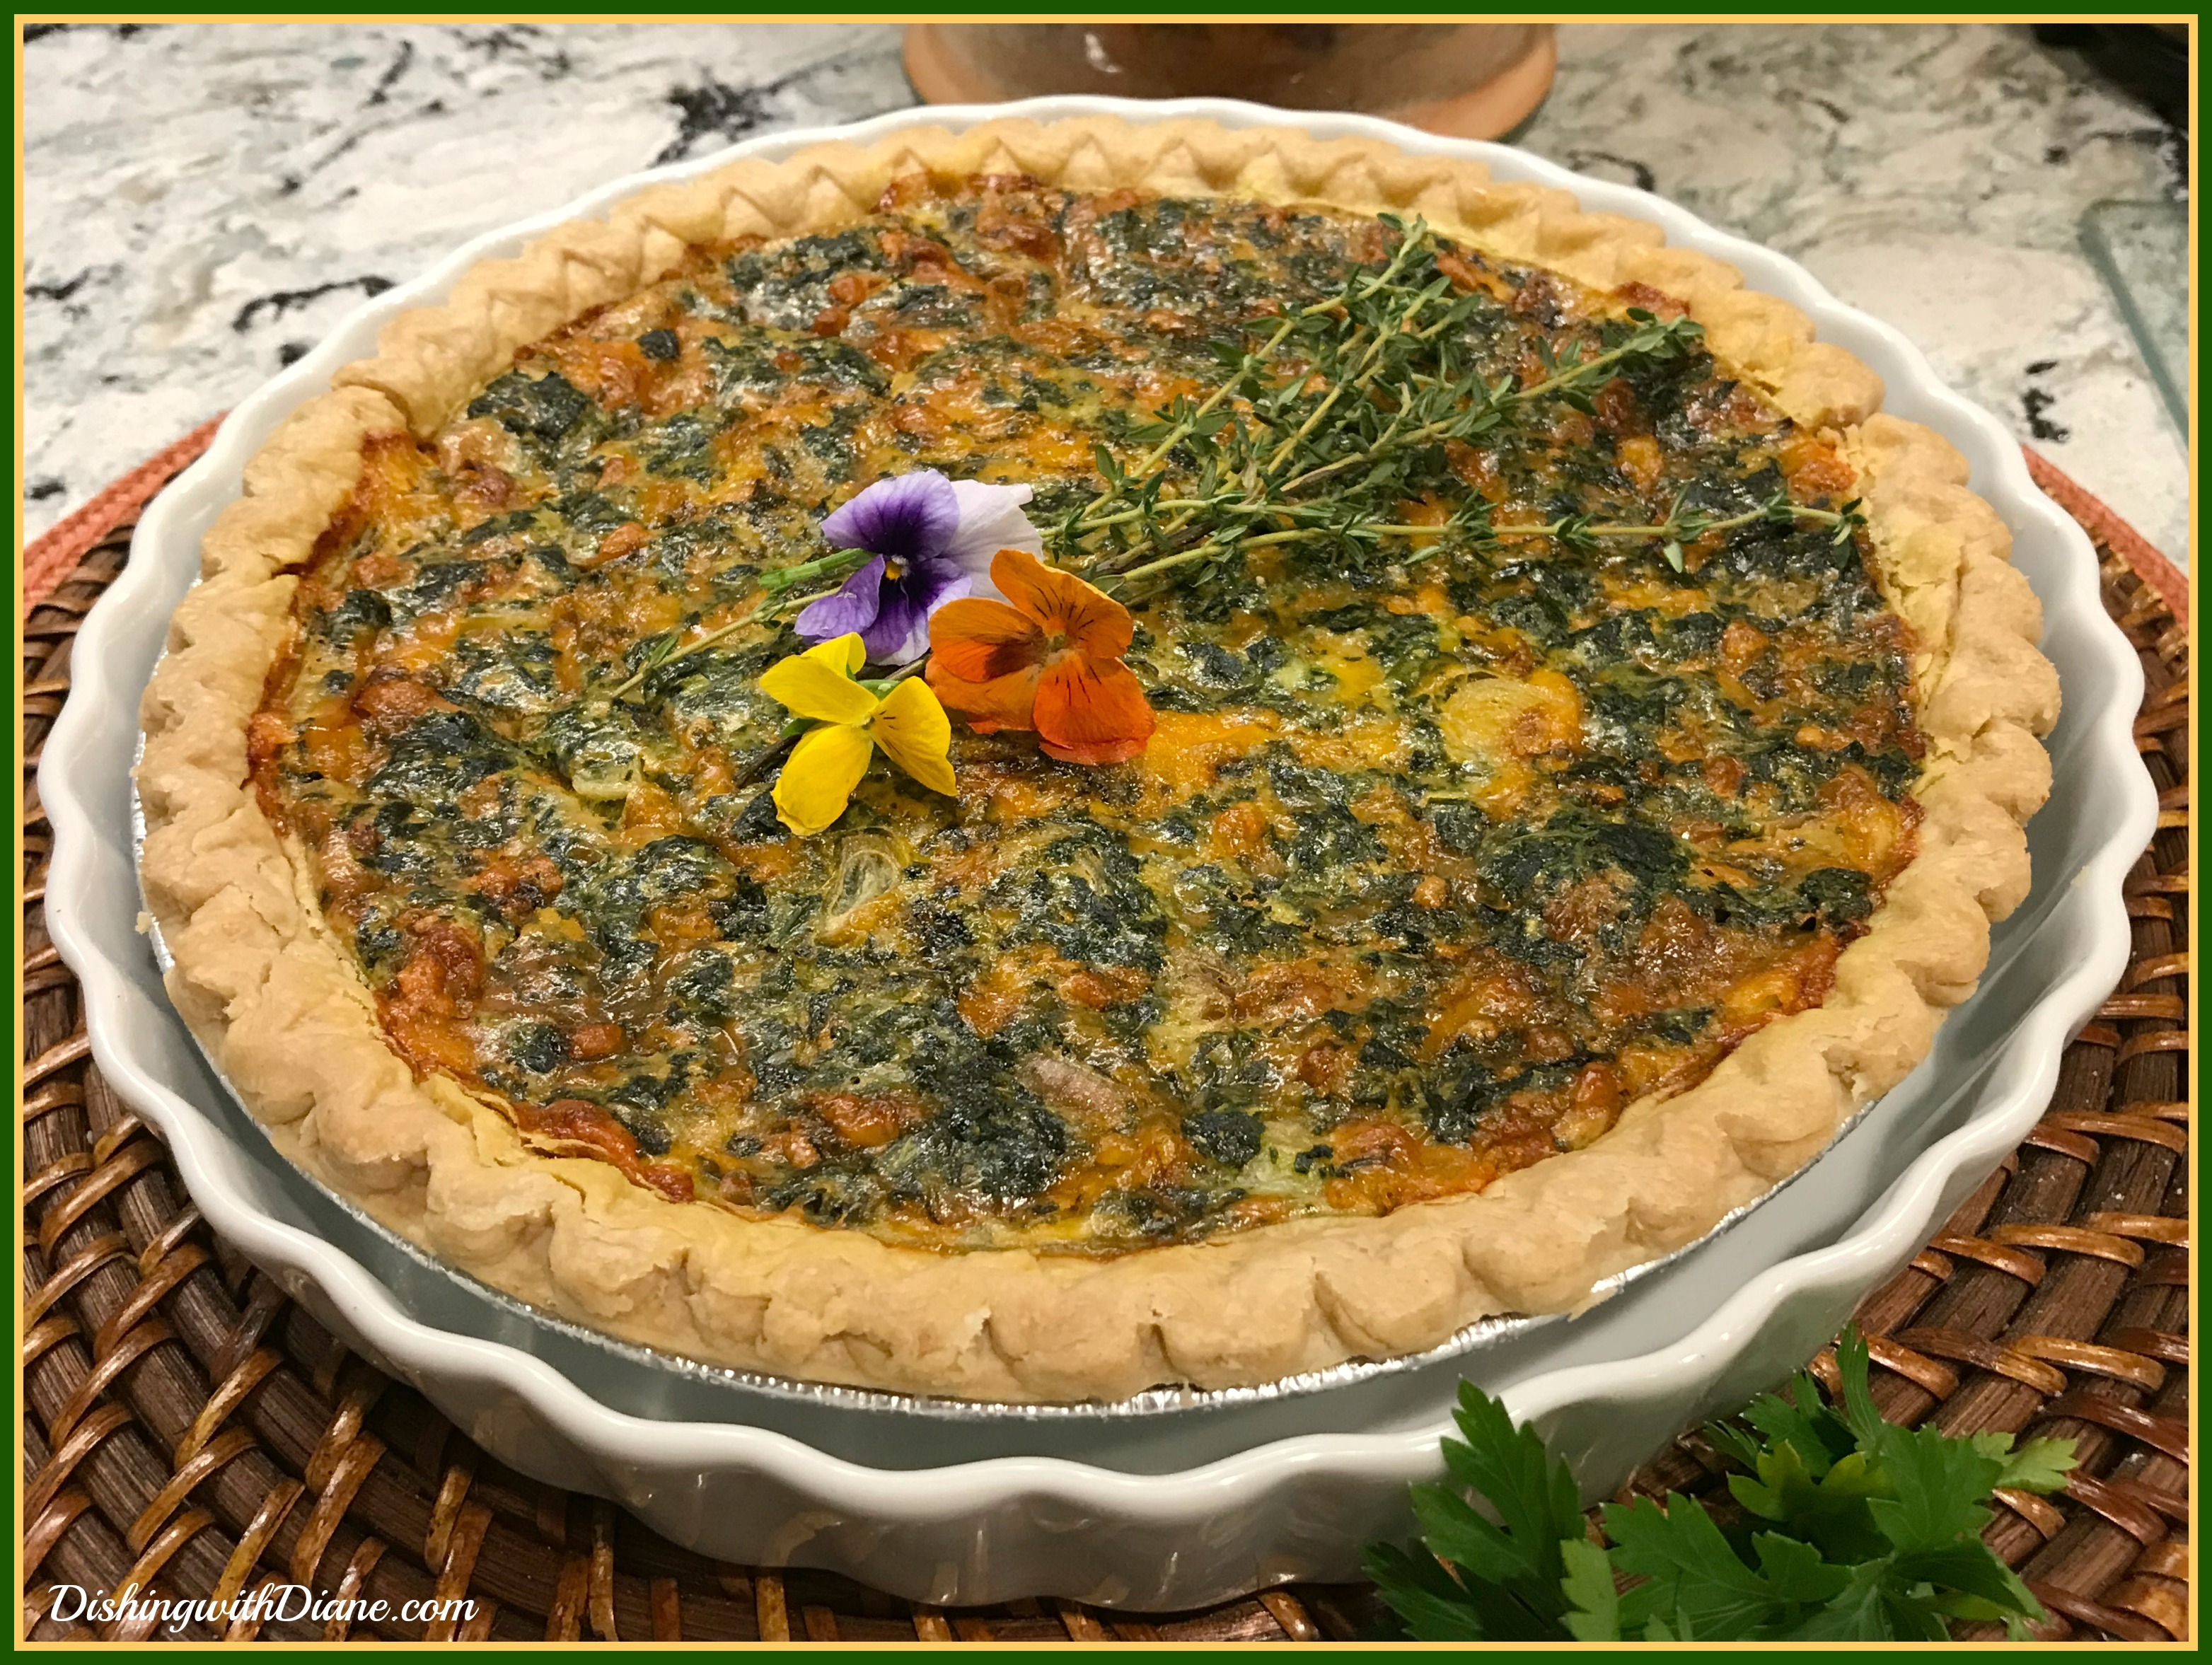 2019-08-22 23.04.53 SPINACH QUICHE